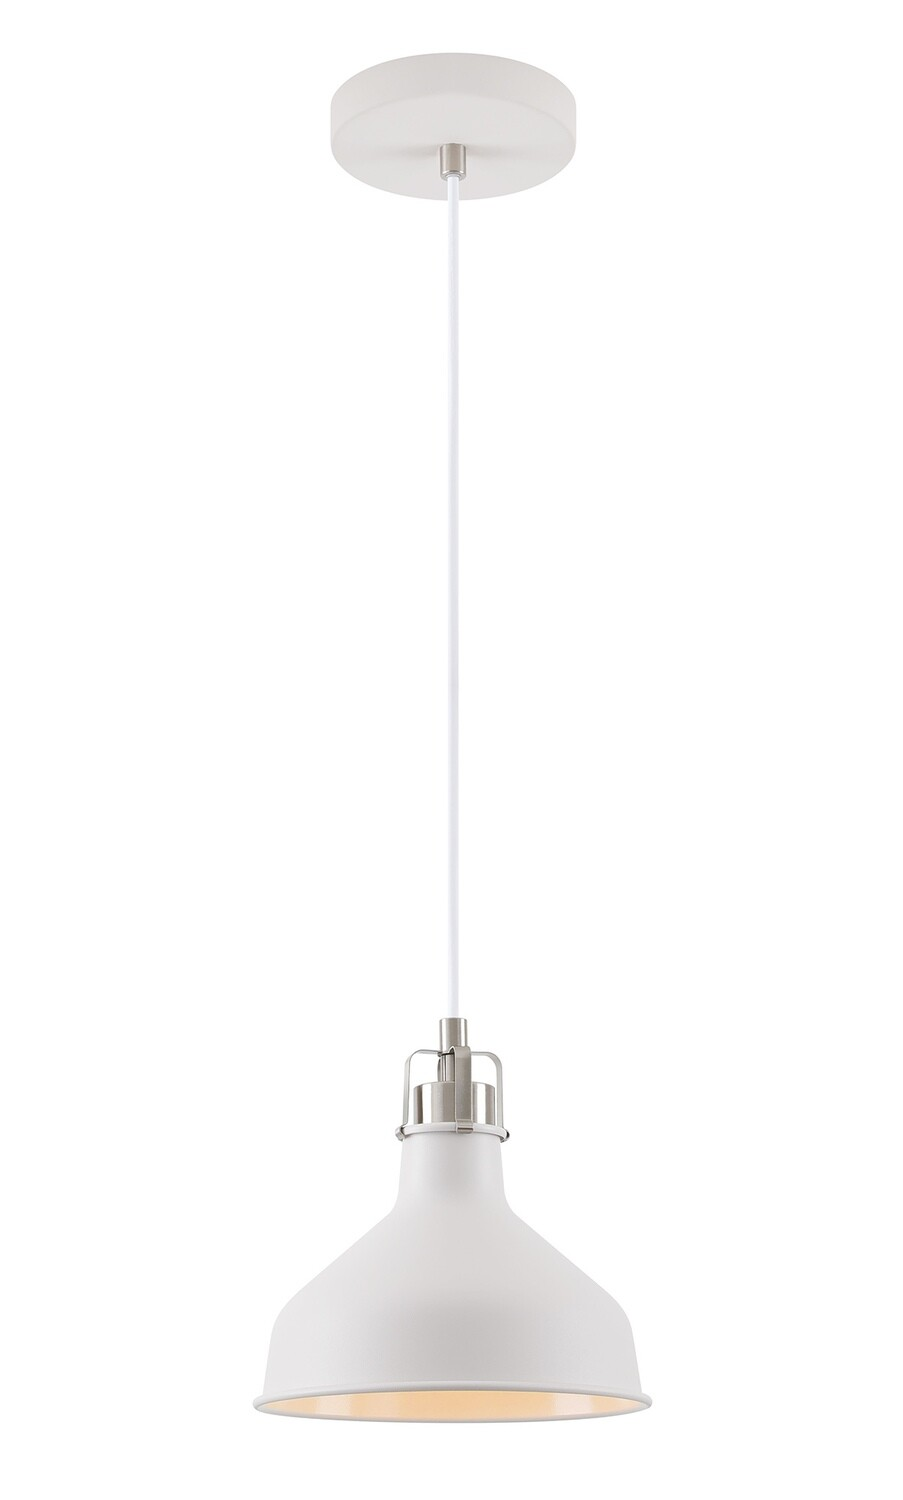 Lumina Small Pendant, 1 x E27, Sand White/Satin Nickel/White